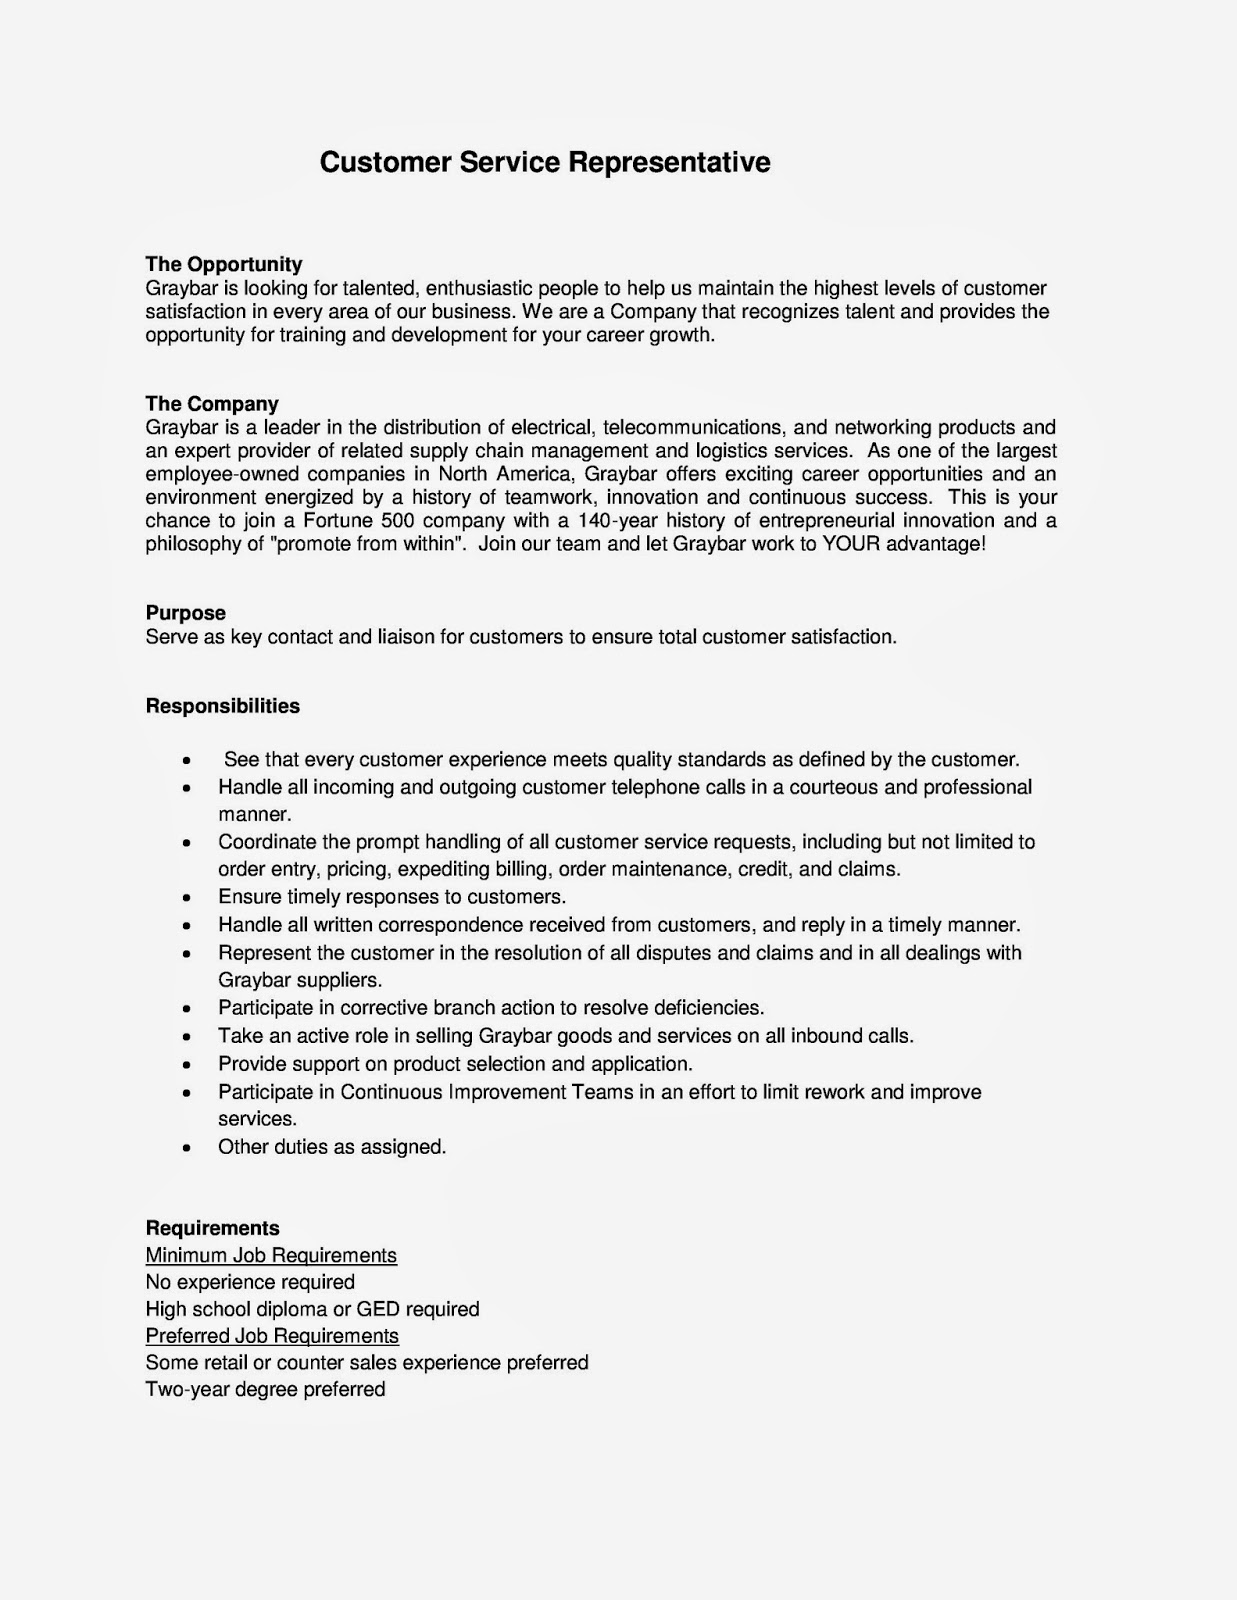 Customer Service Sales Representative Resume Cover Letter Sample For Inbound Customer Service